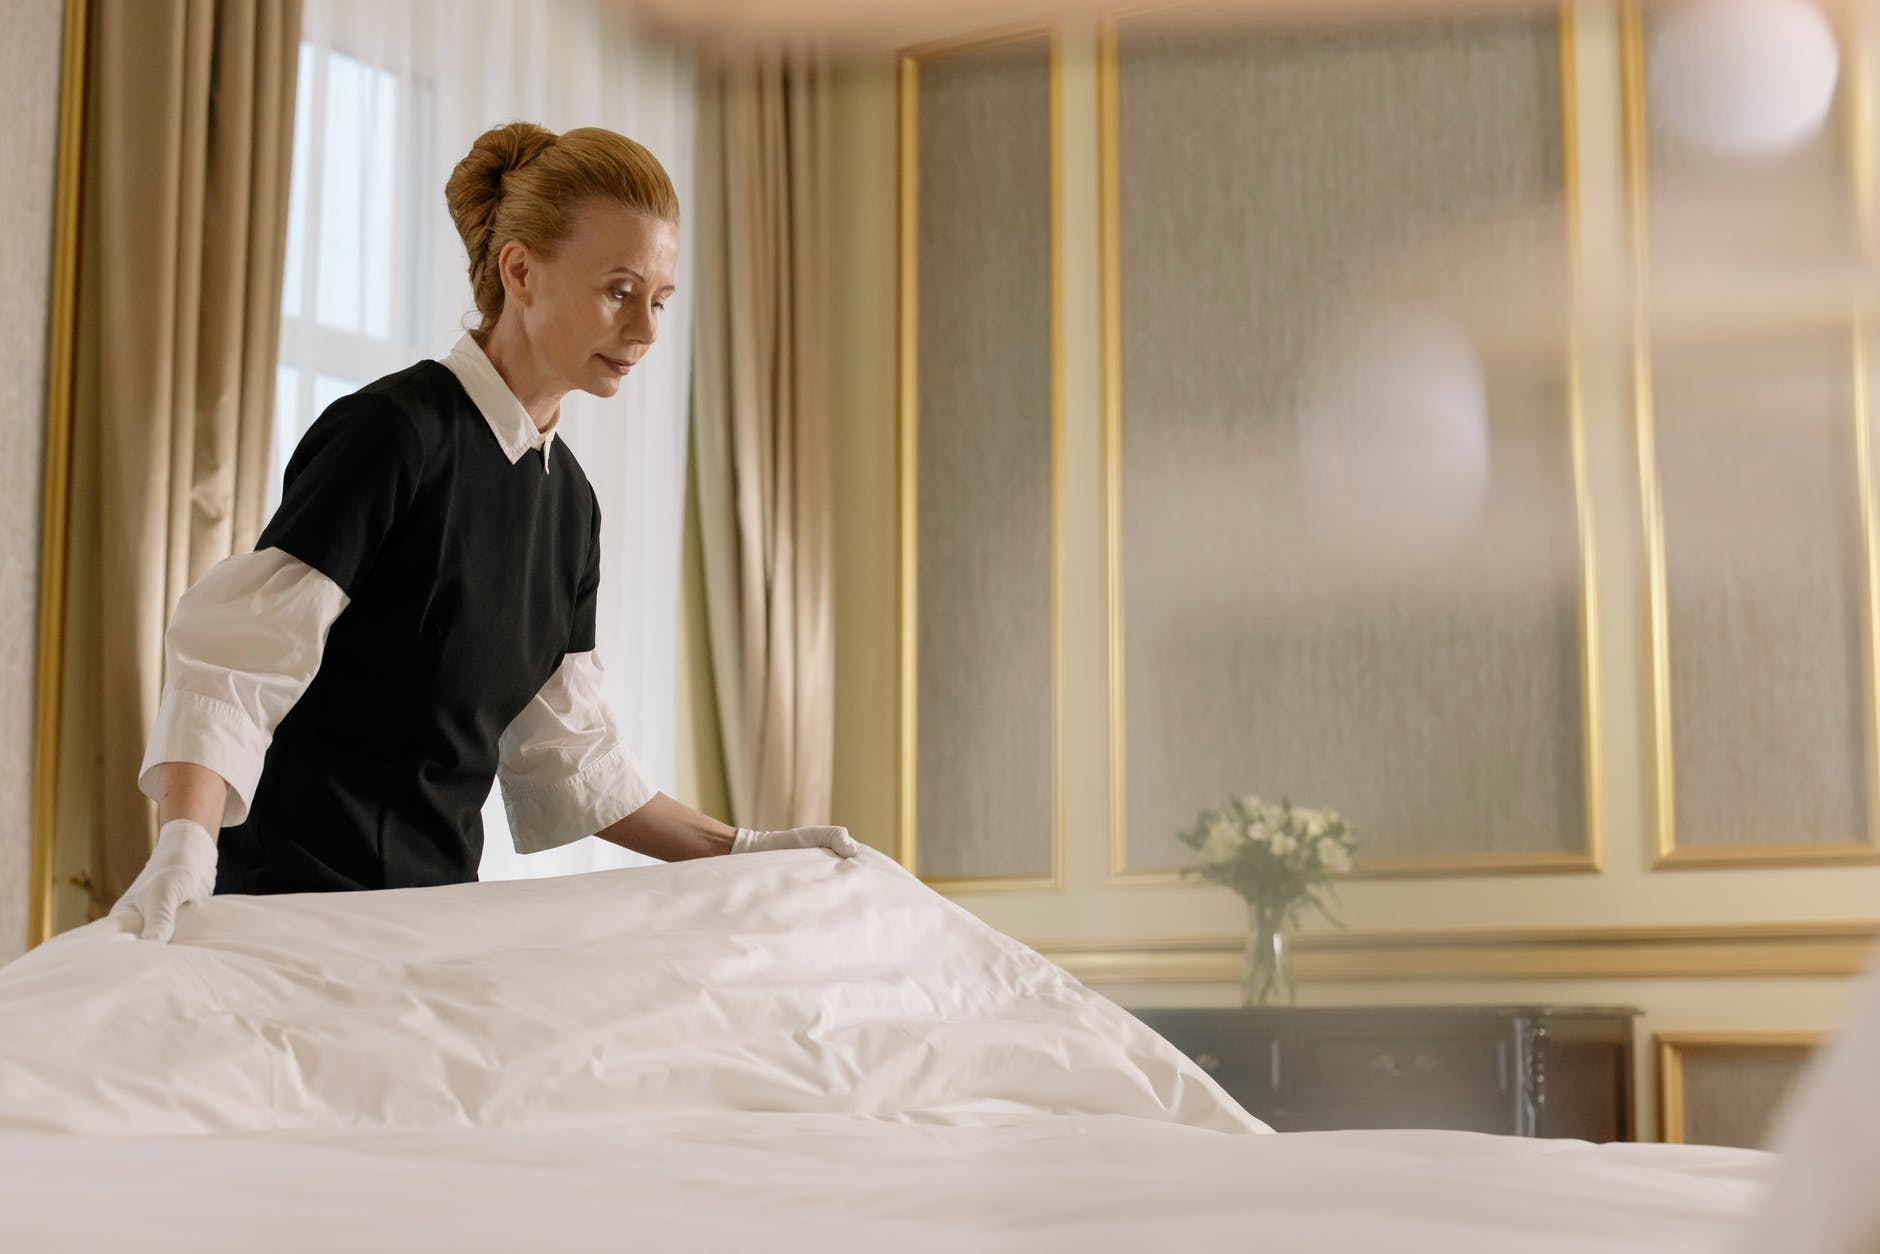 A housemaid arranging a bed cover | Source: Pexels